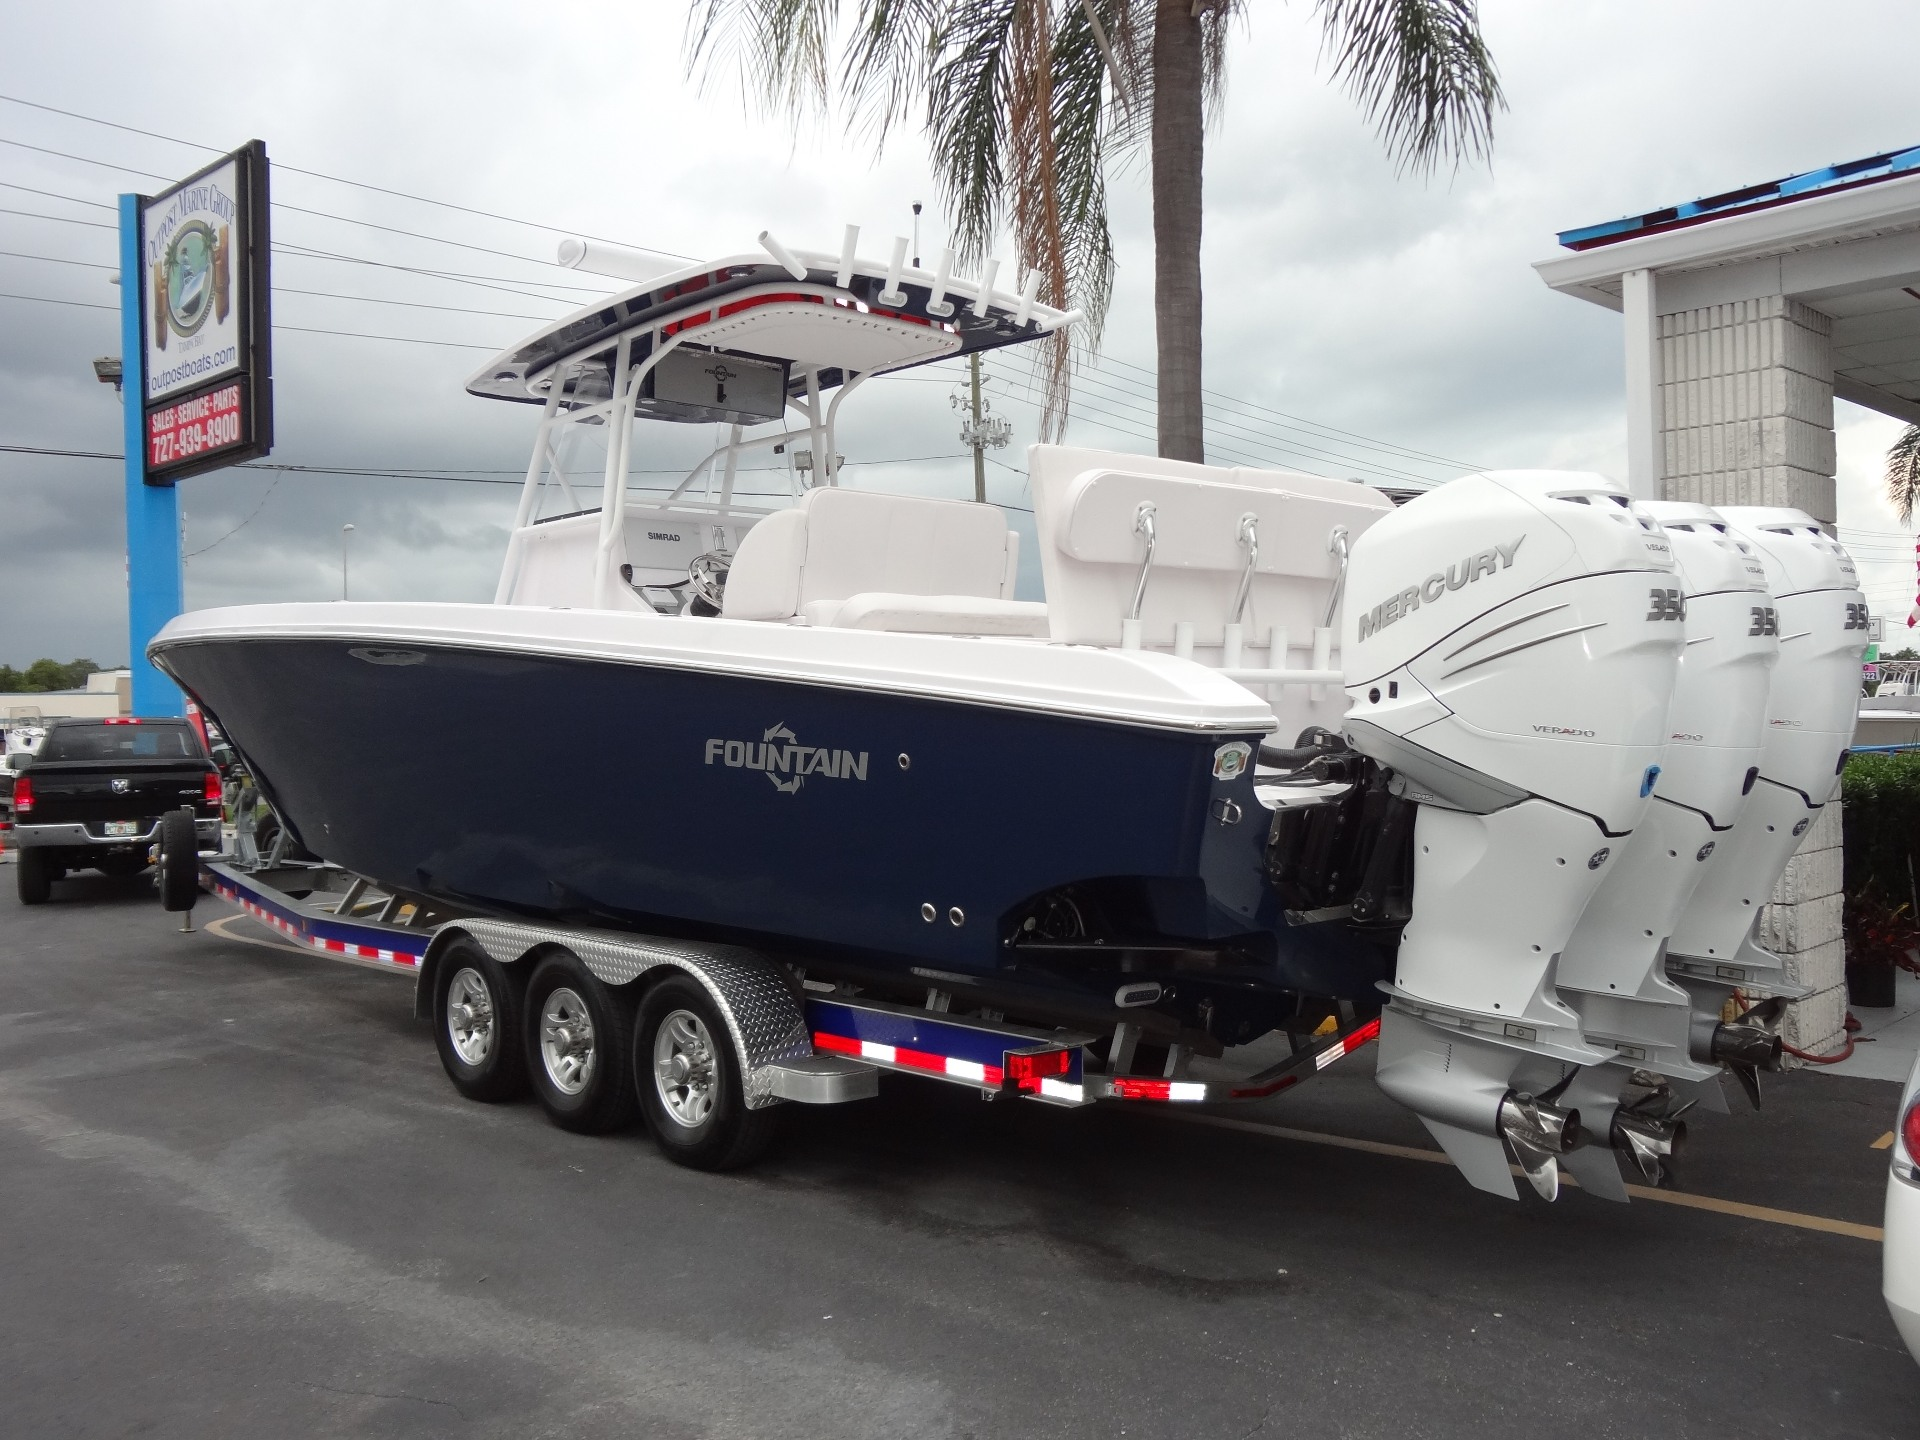 2016 Fountain 38 Luxury Edition in Holiday, Florida